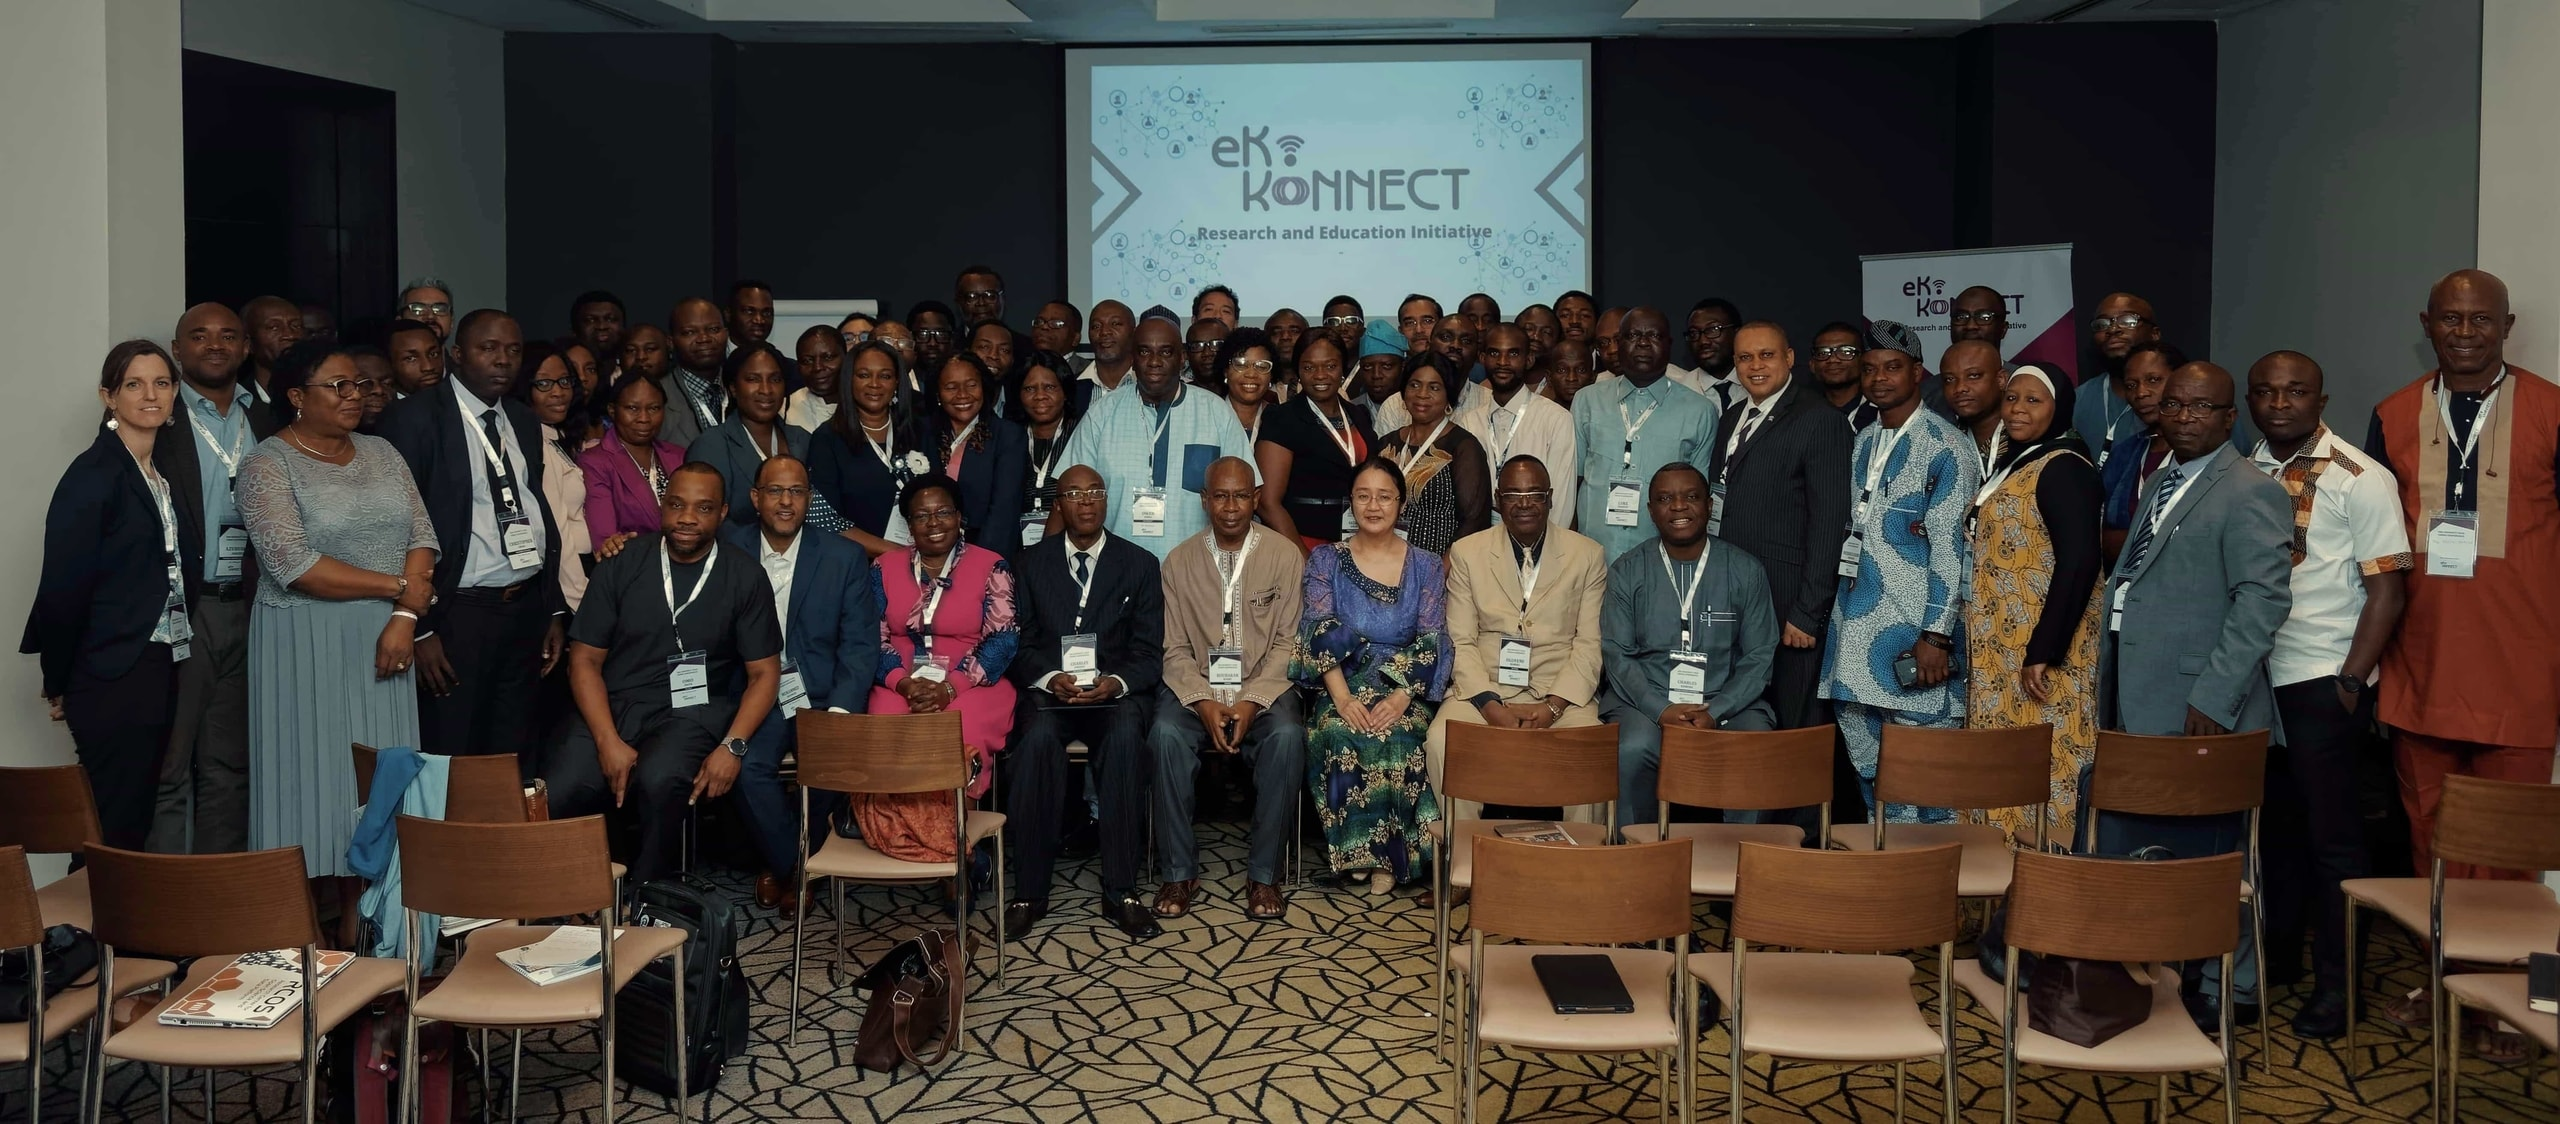 Eko-Konnect 2020 Users Conference Concludes...